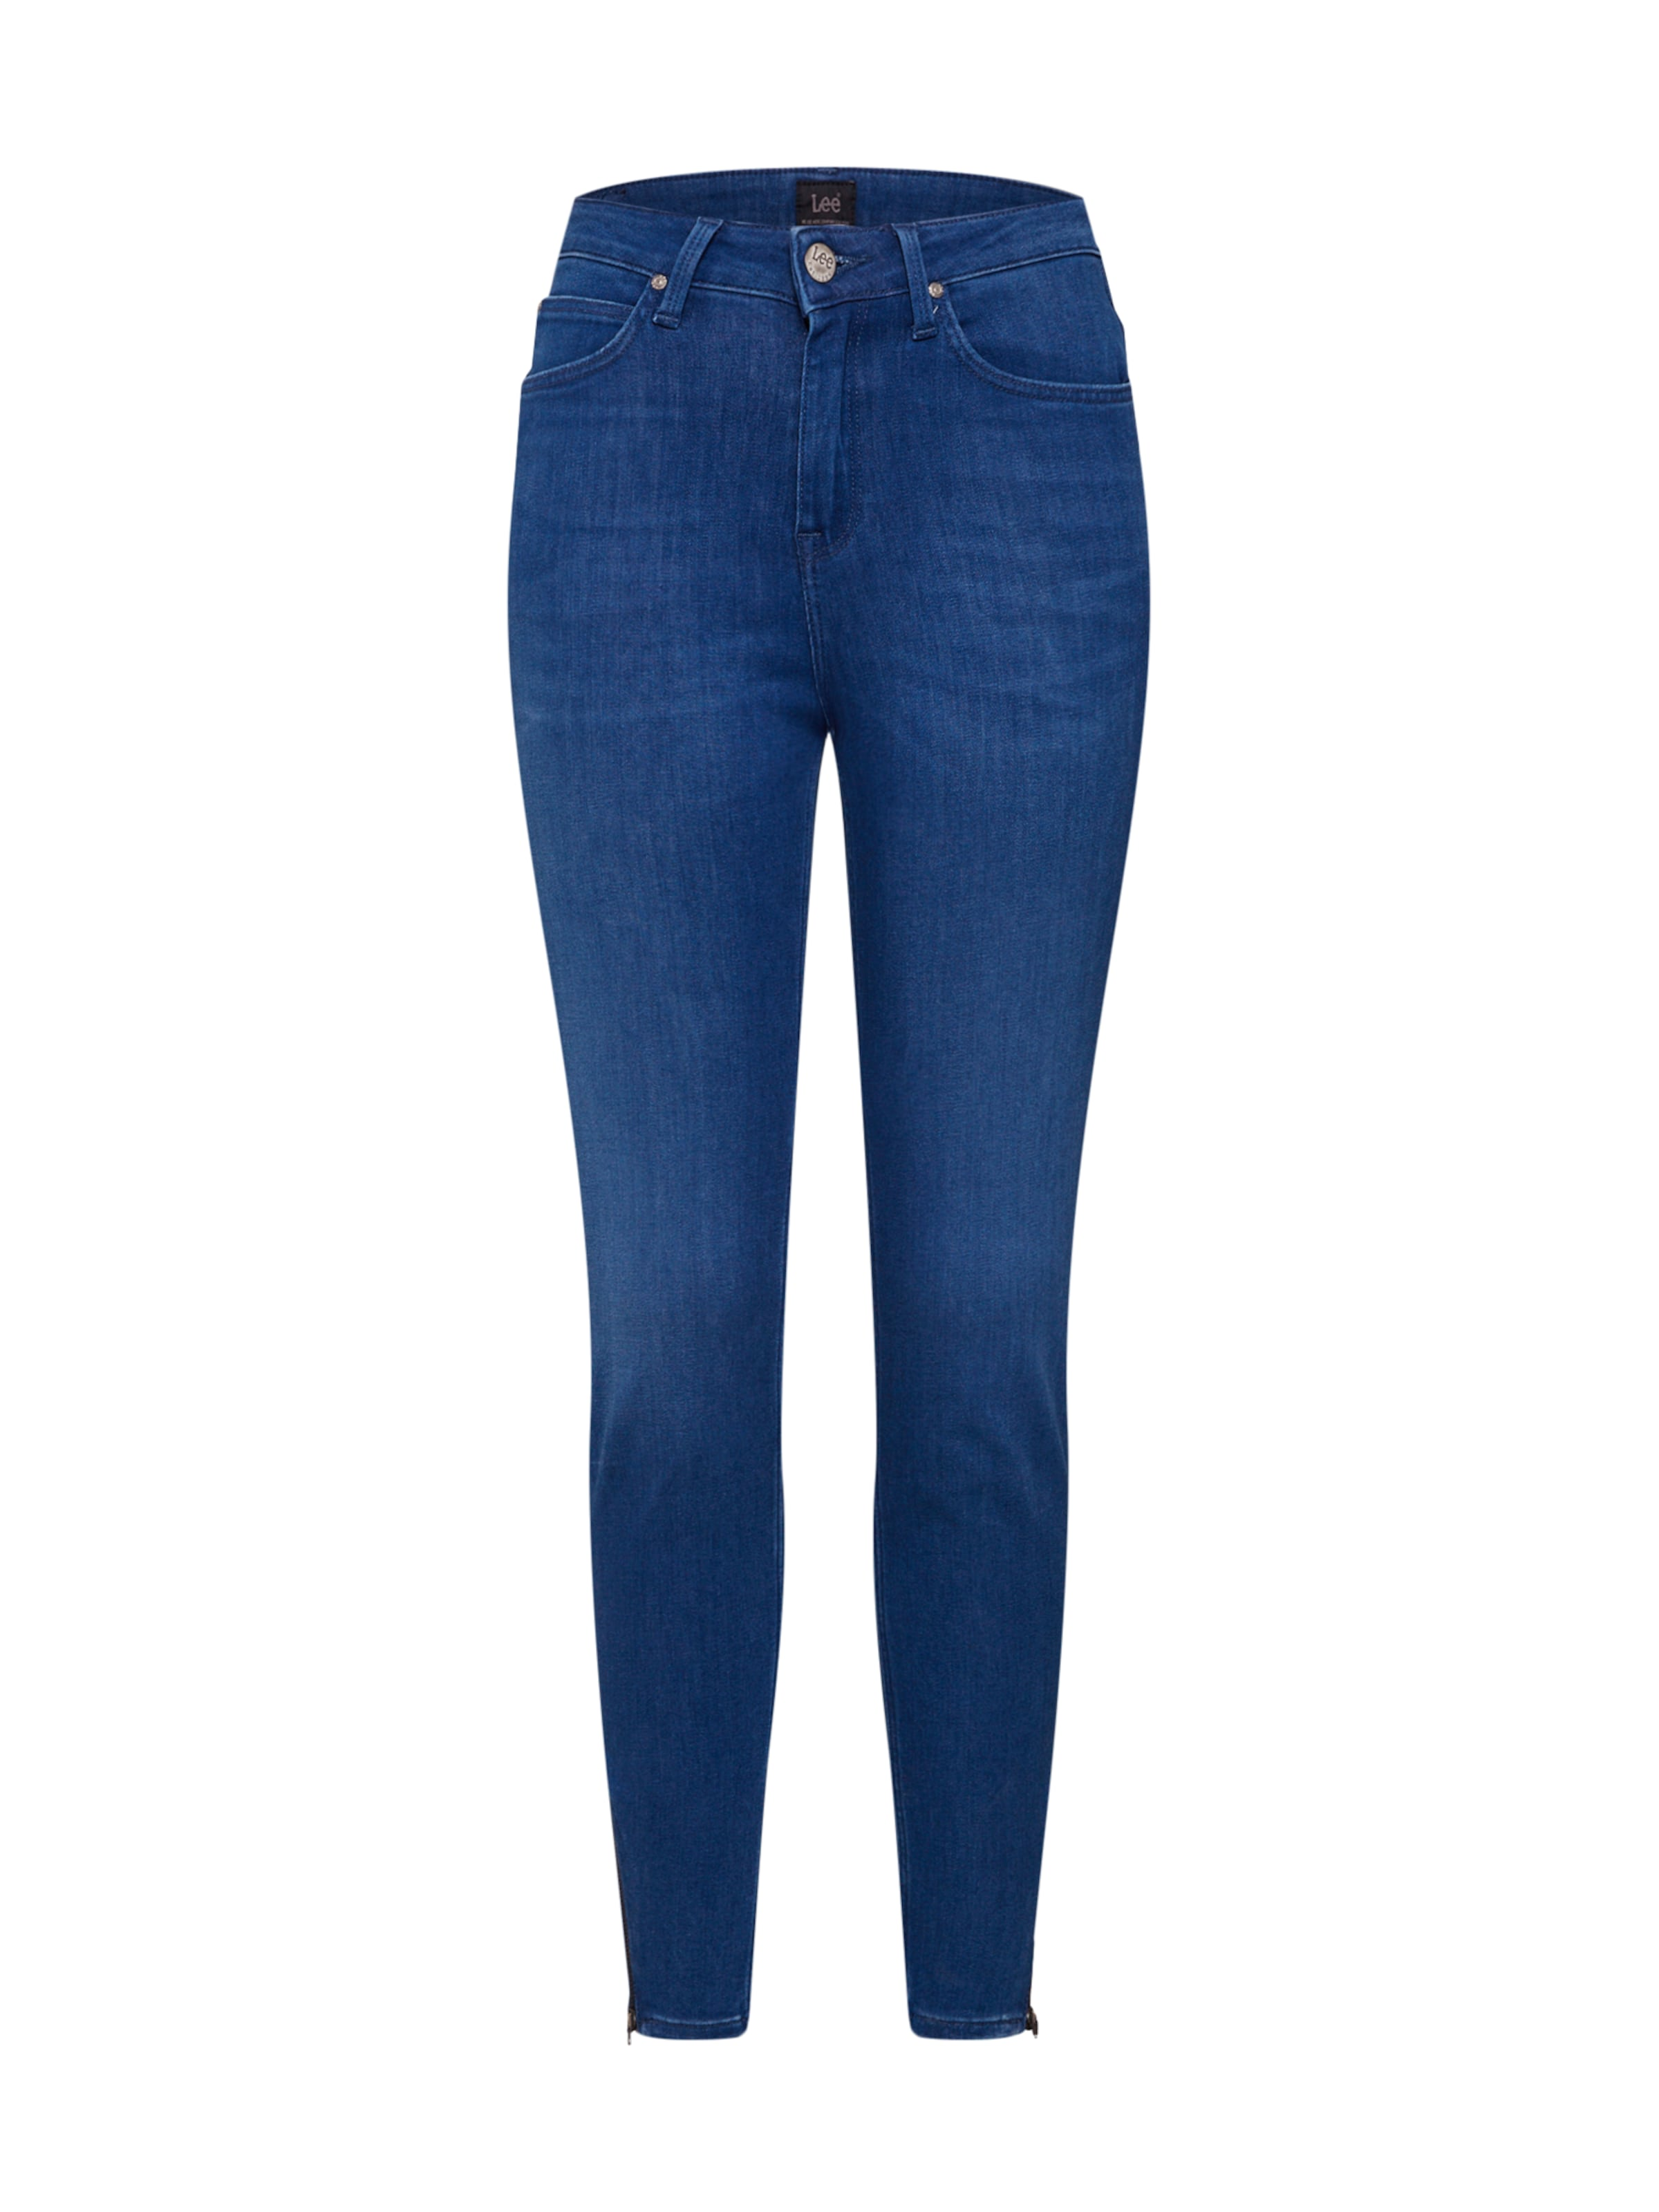 'scarlett' Blue Lee In Jeans Denim c4Lqj5A3RS